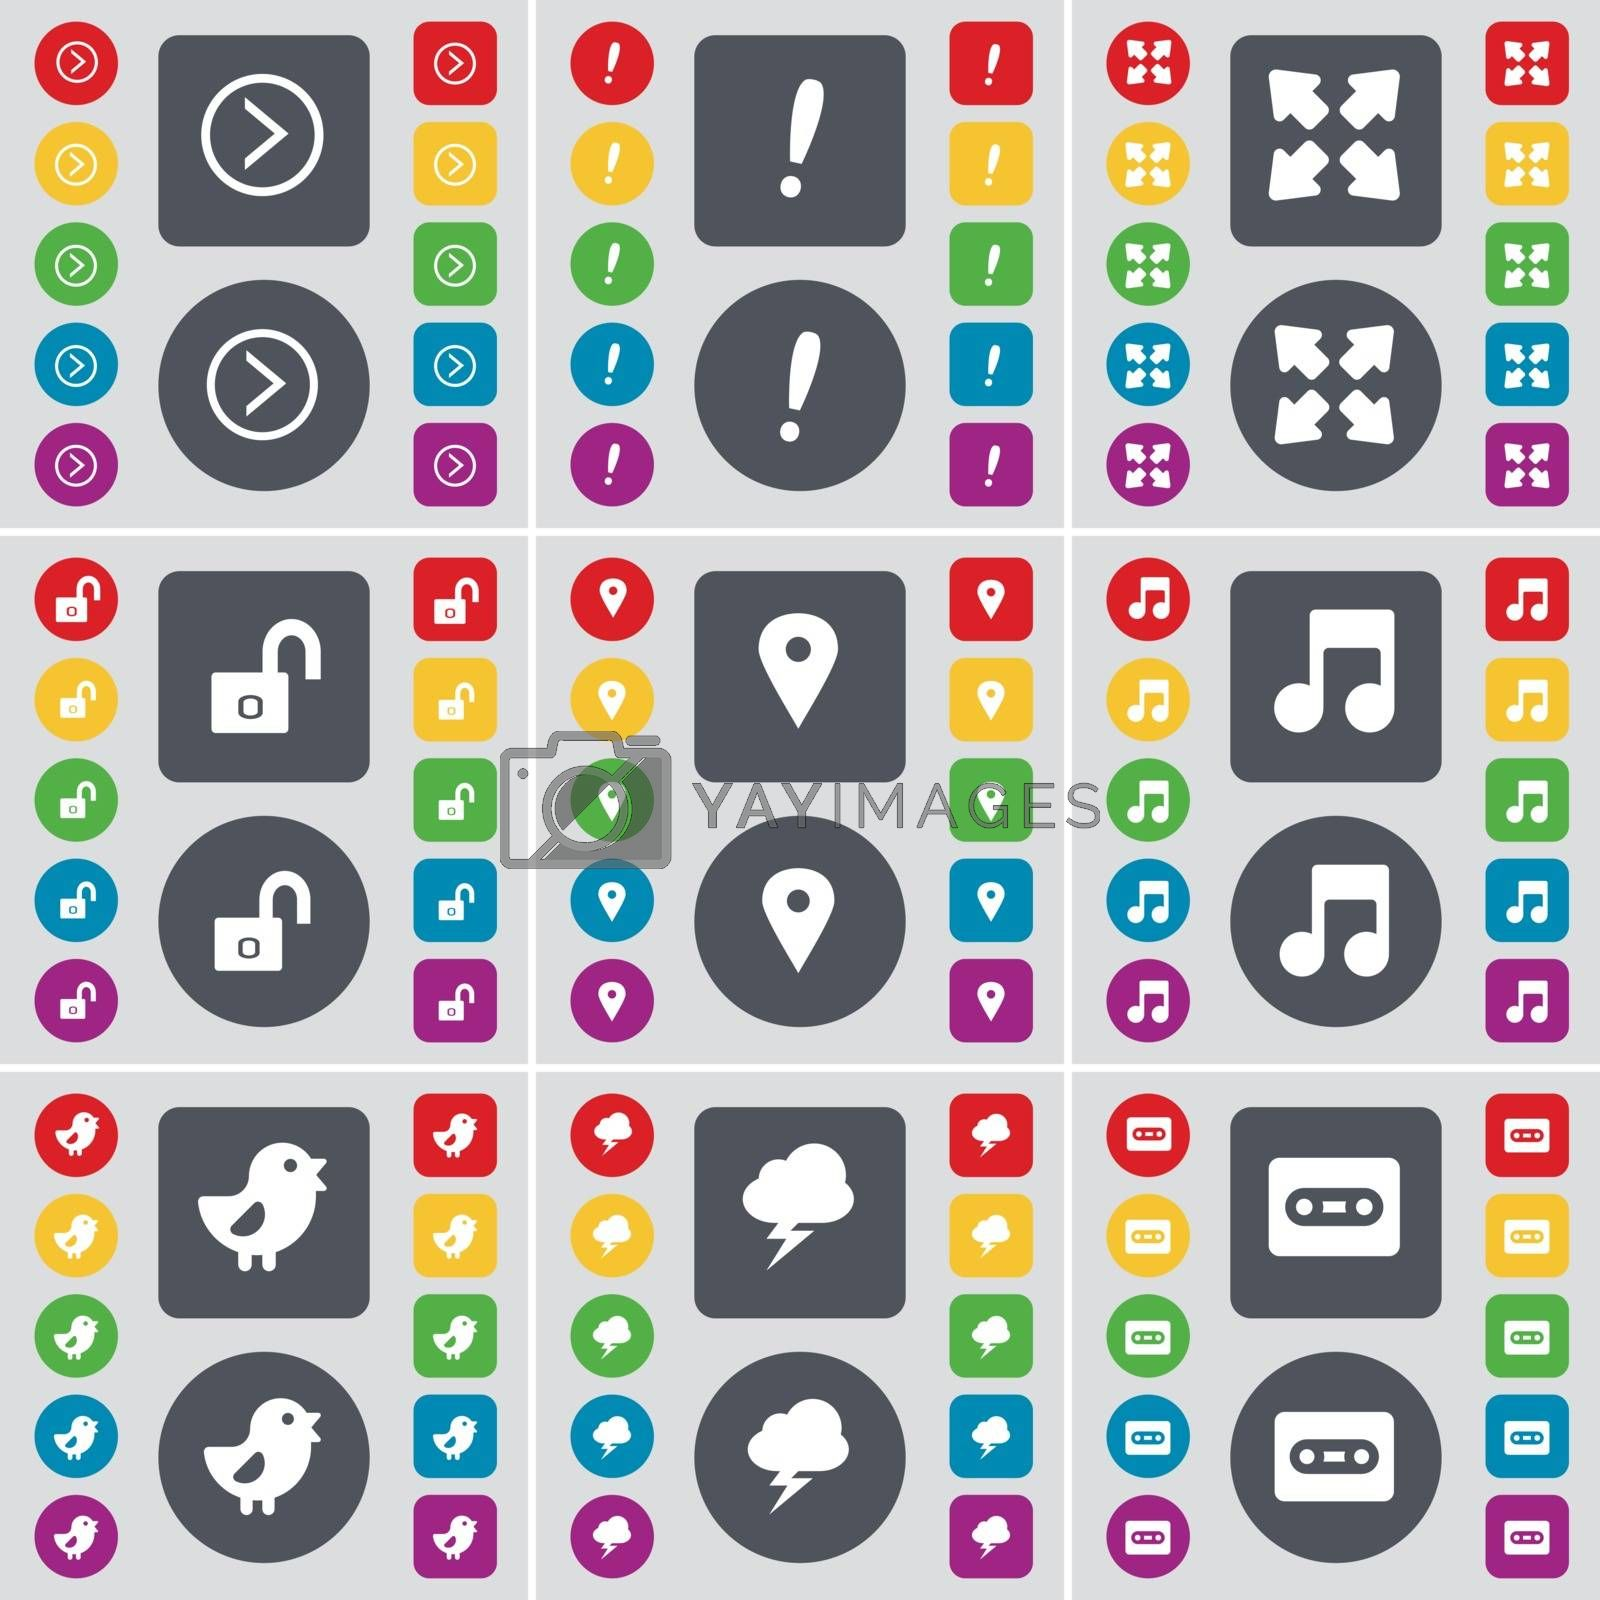 Royalty free image of Arrow right, Exclamation mark, Full screen, Lock, Checkpoint, Note, Bird, Lightning, Cassette icon symbol. A large set of flat, colored buttons for your design. Vector by serhii_lohvyniuk